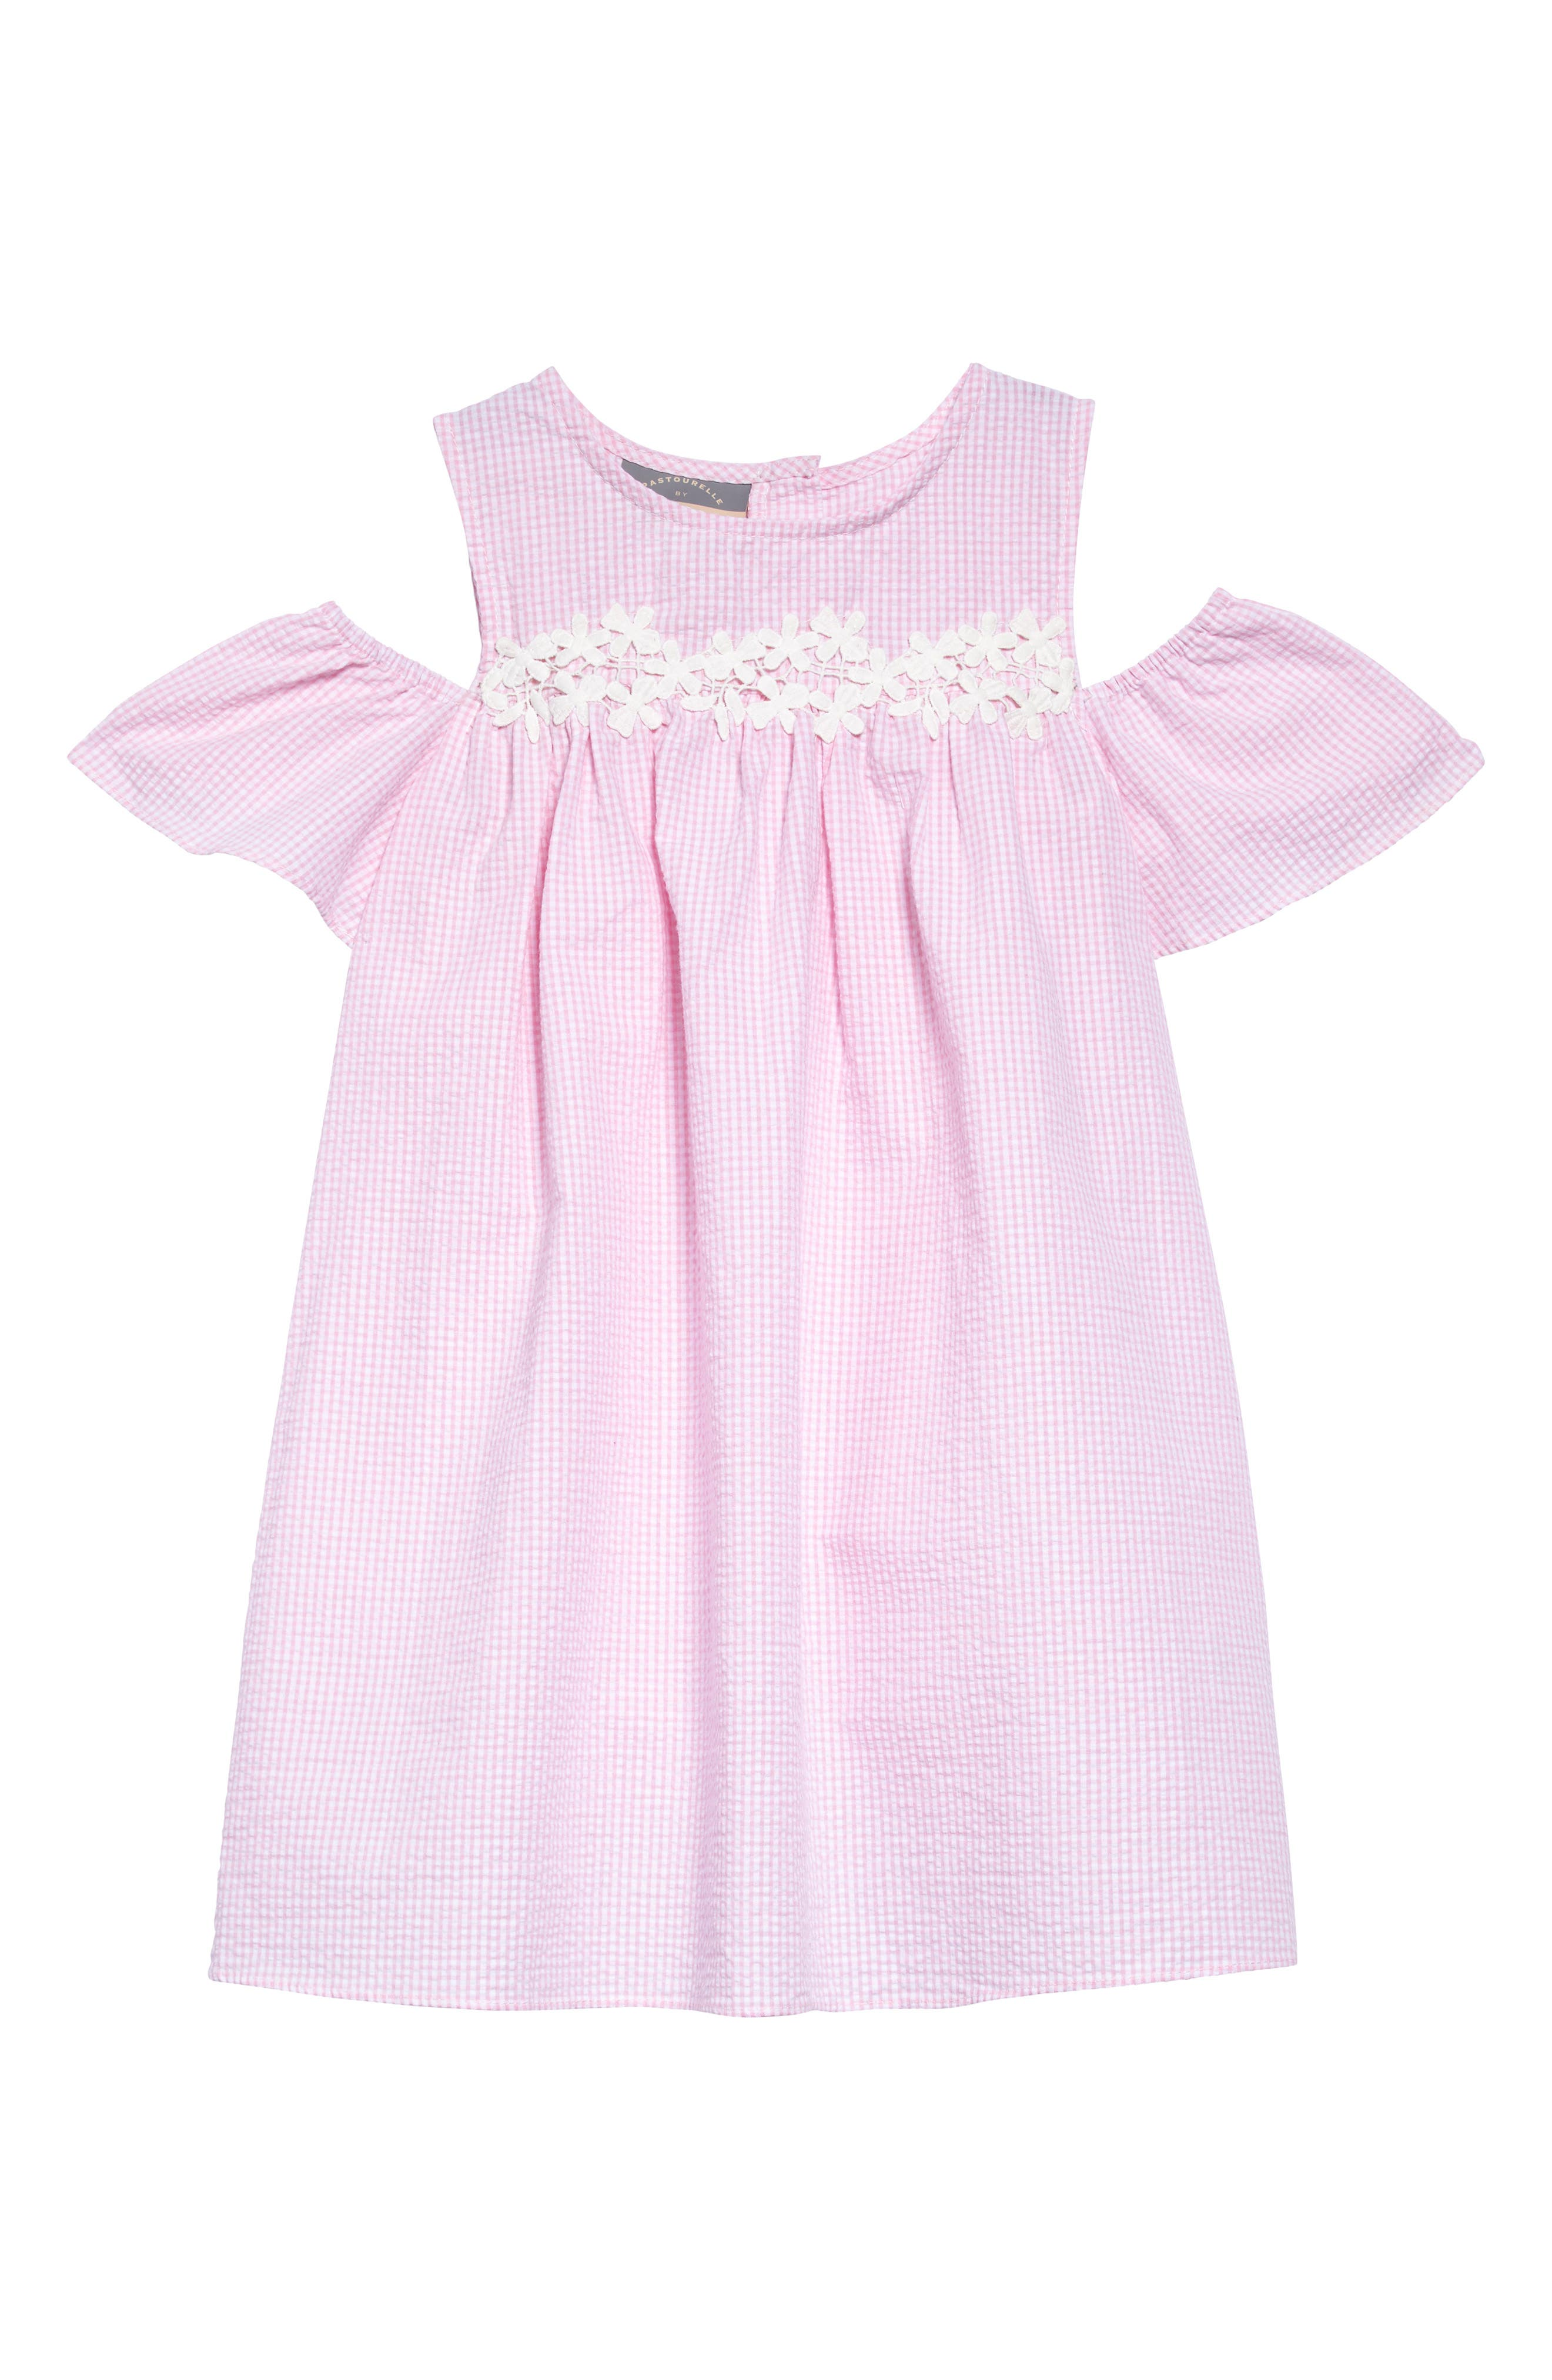 Cold Shoulder Dress,                         Main,                         color, Pink White